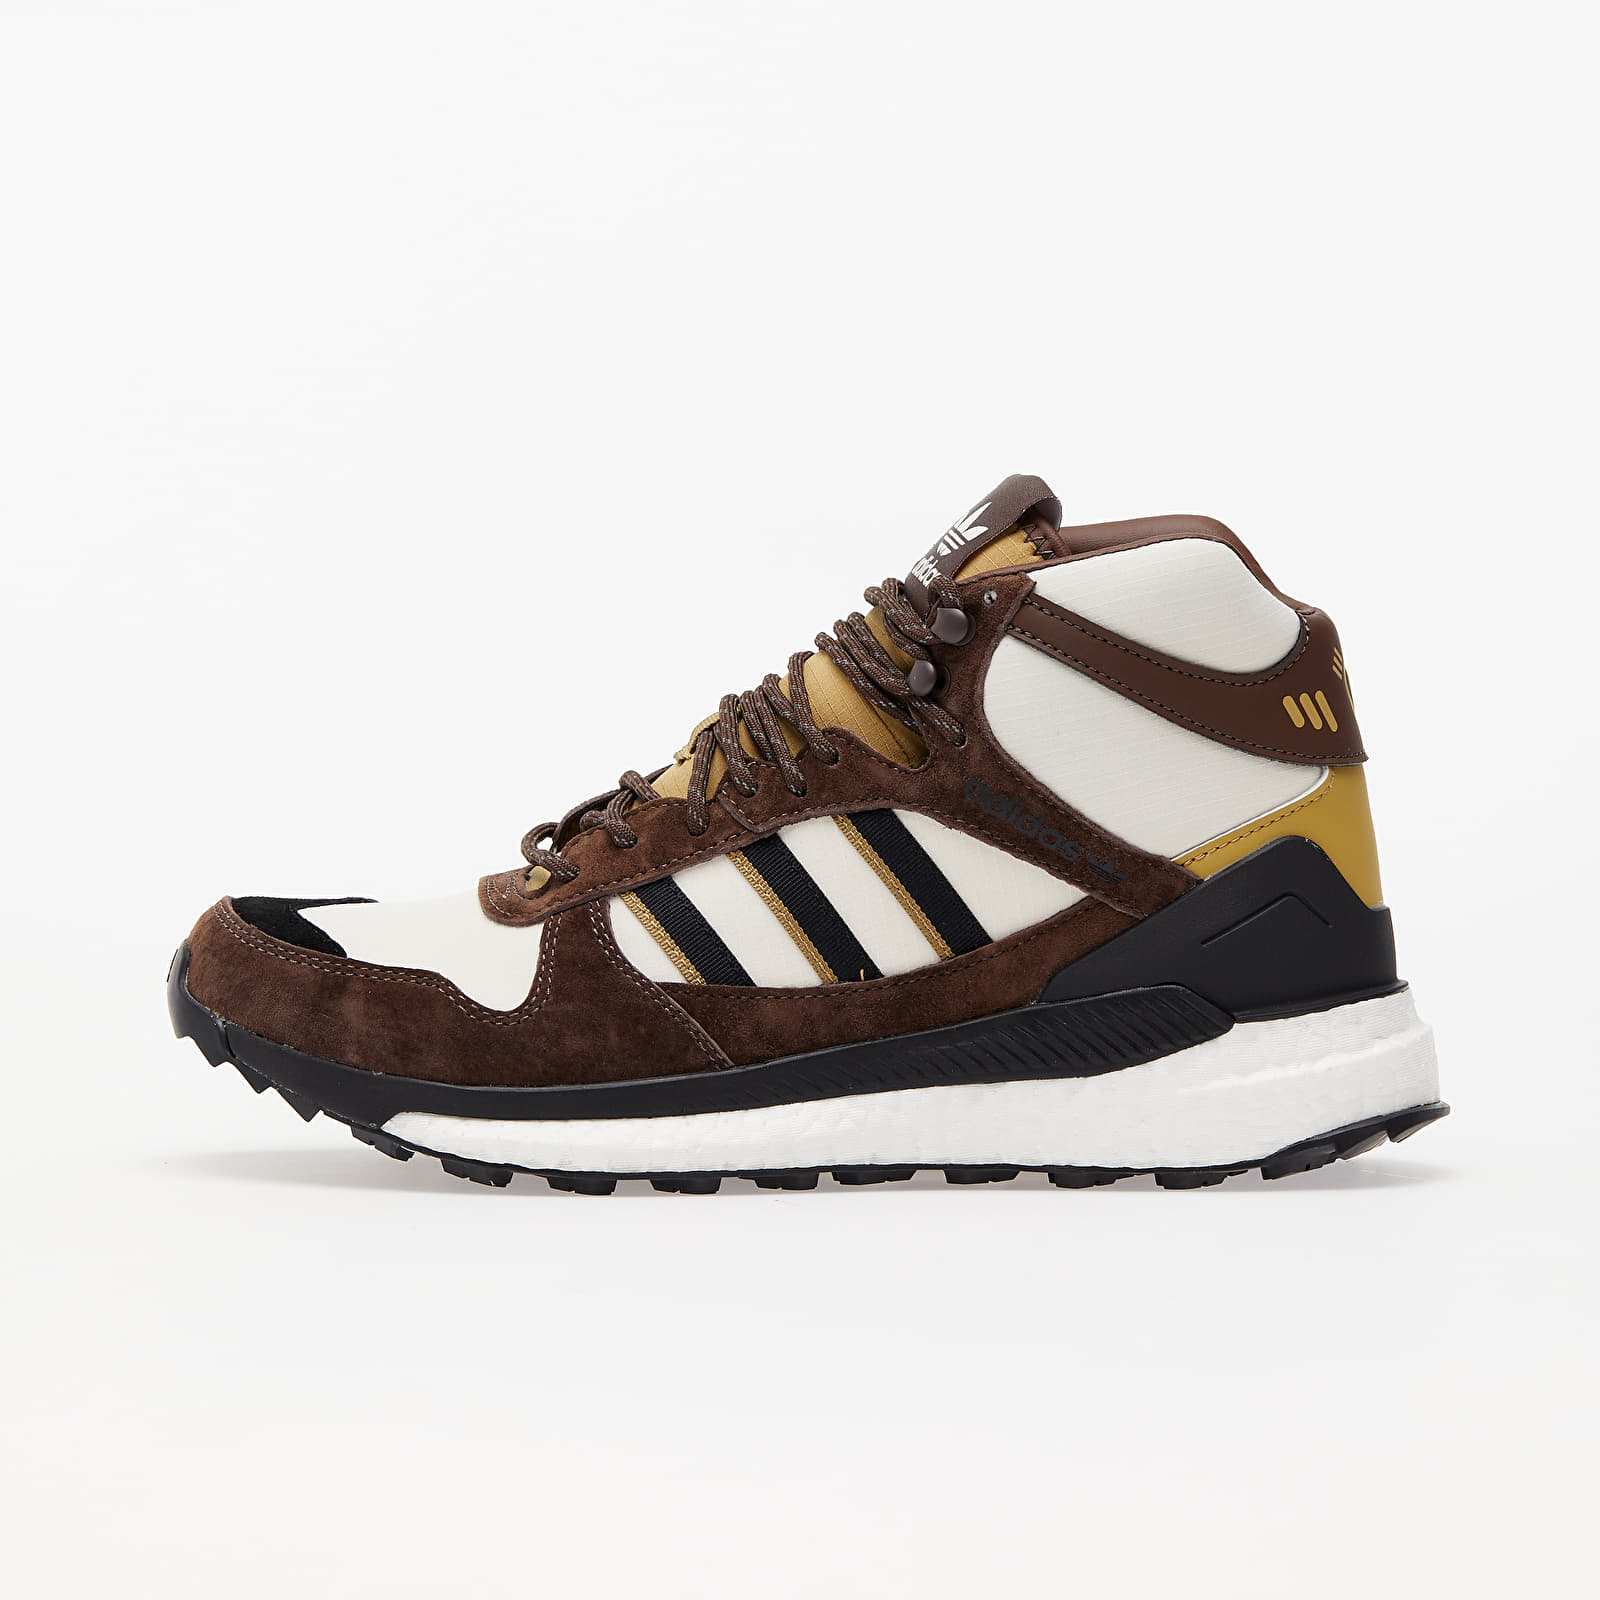 adidas Marathon Human Made Chalk White/ Core Black/ Khaki FY9148